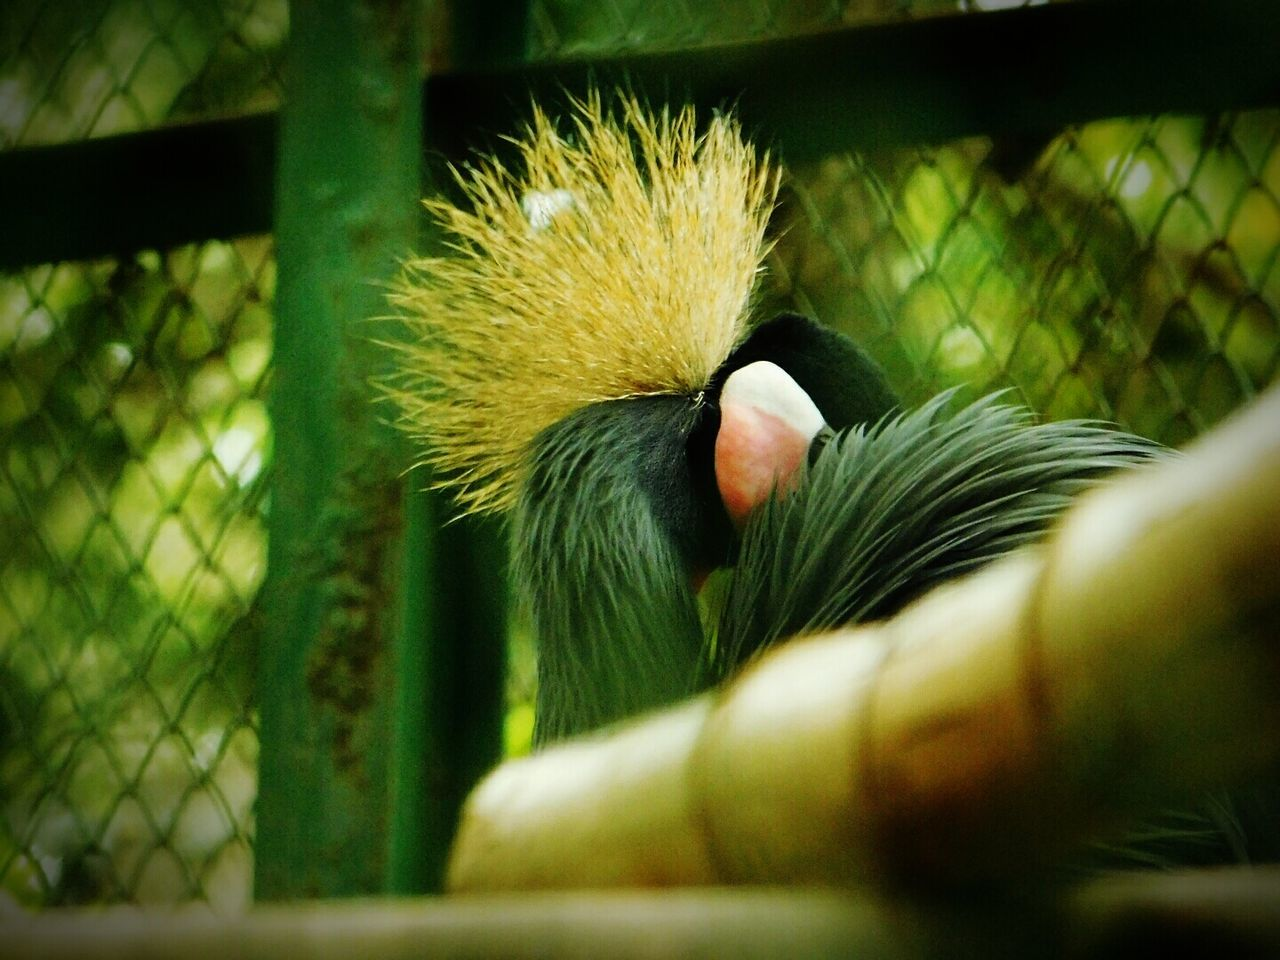 Bird Cage Trapped Nature Alone Looking For Freedom Sadness😢 Feeling Sad Wildlife Photography